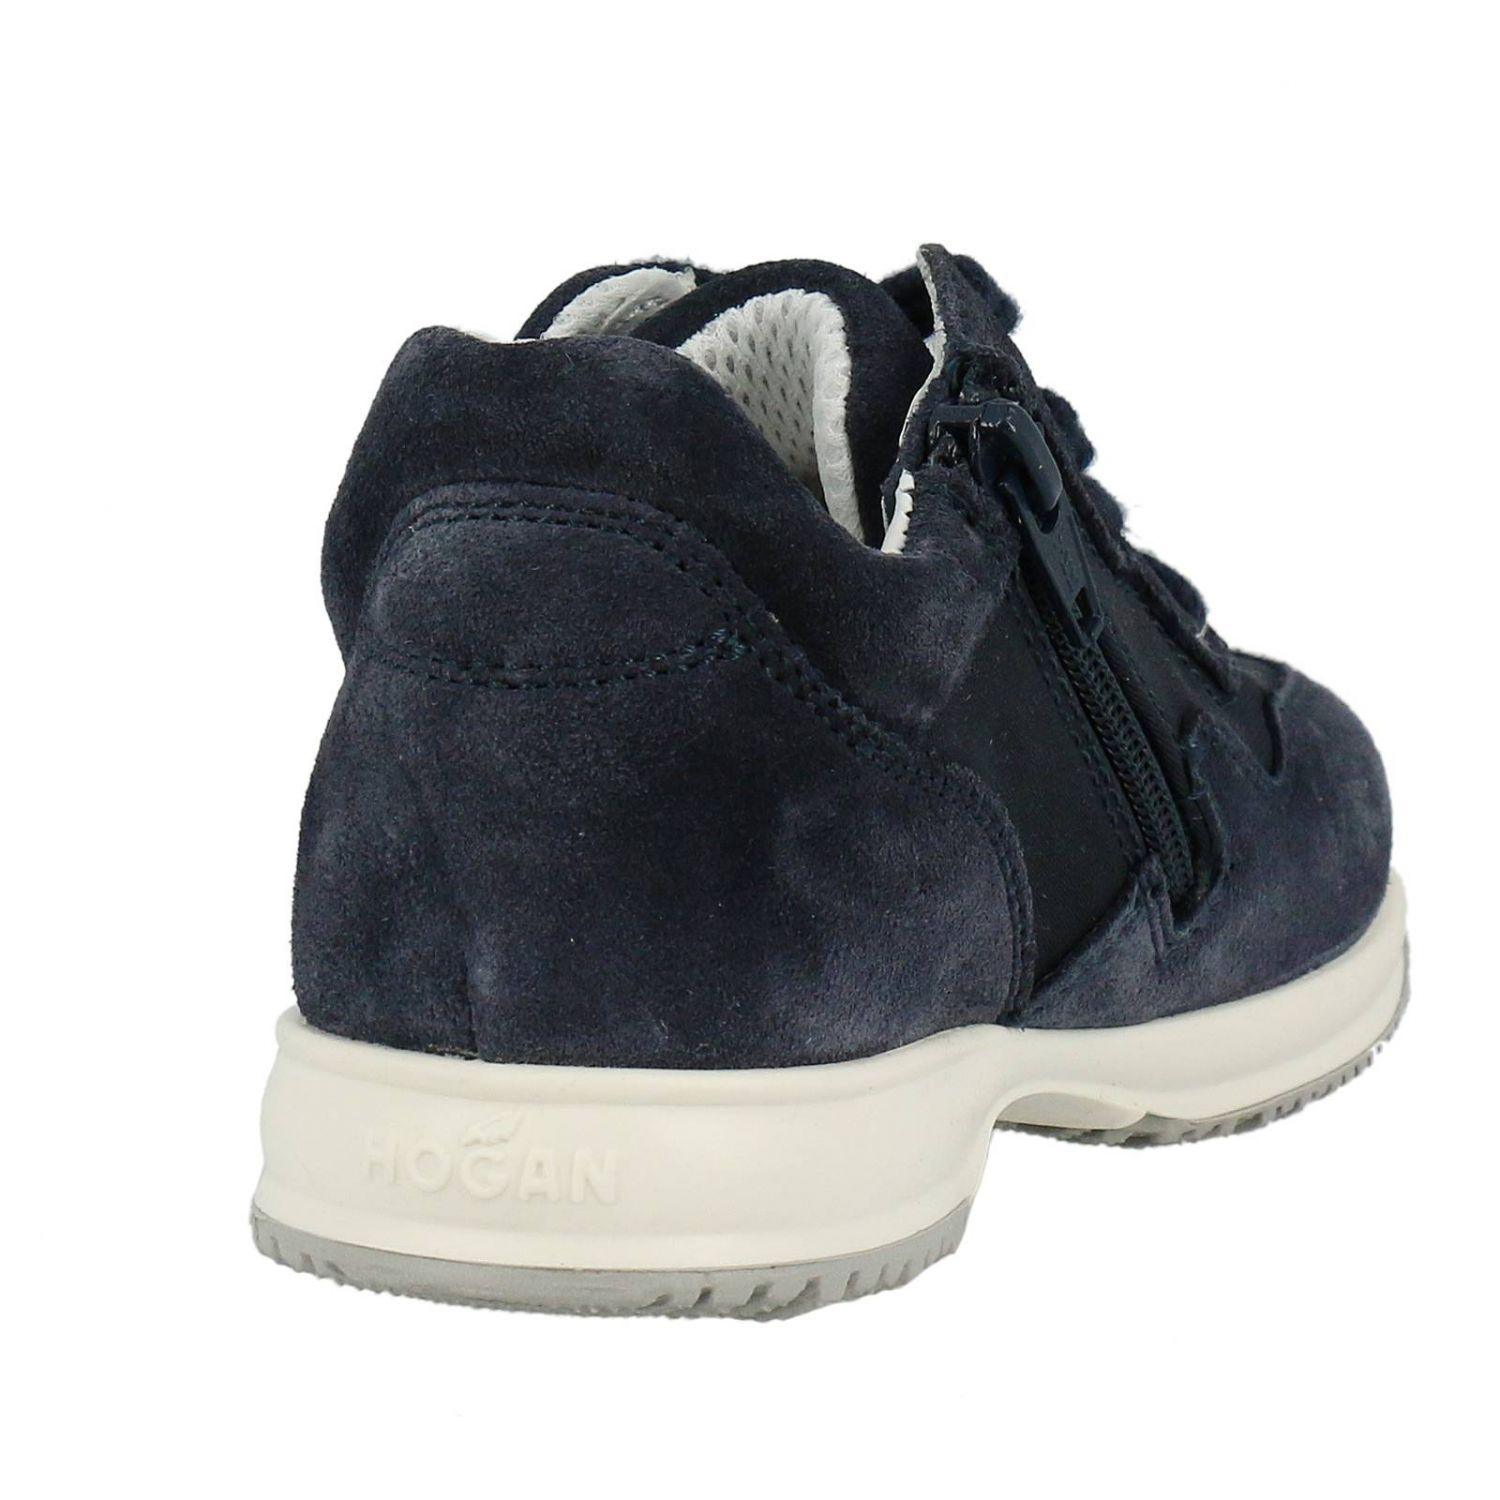 Shoes kids Hogan Baby blue 4